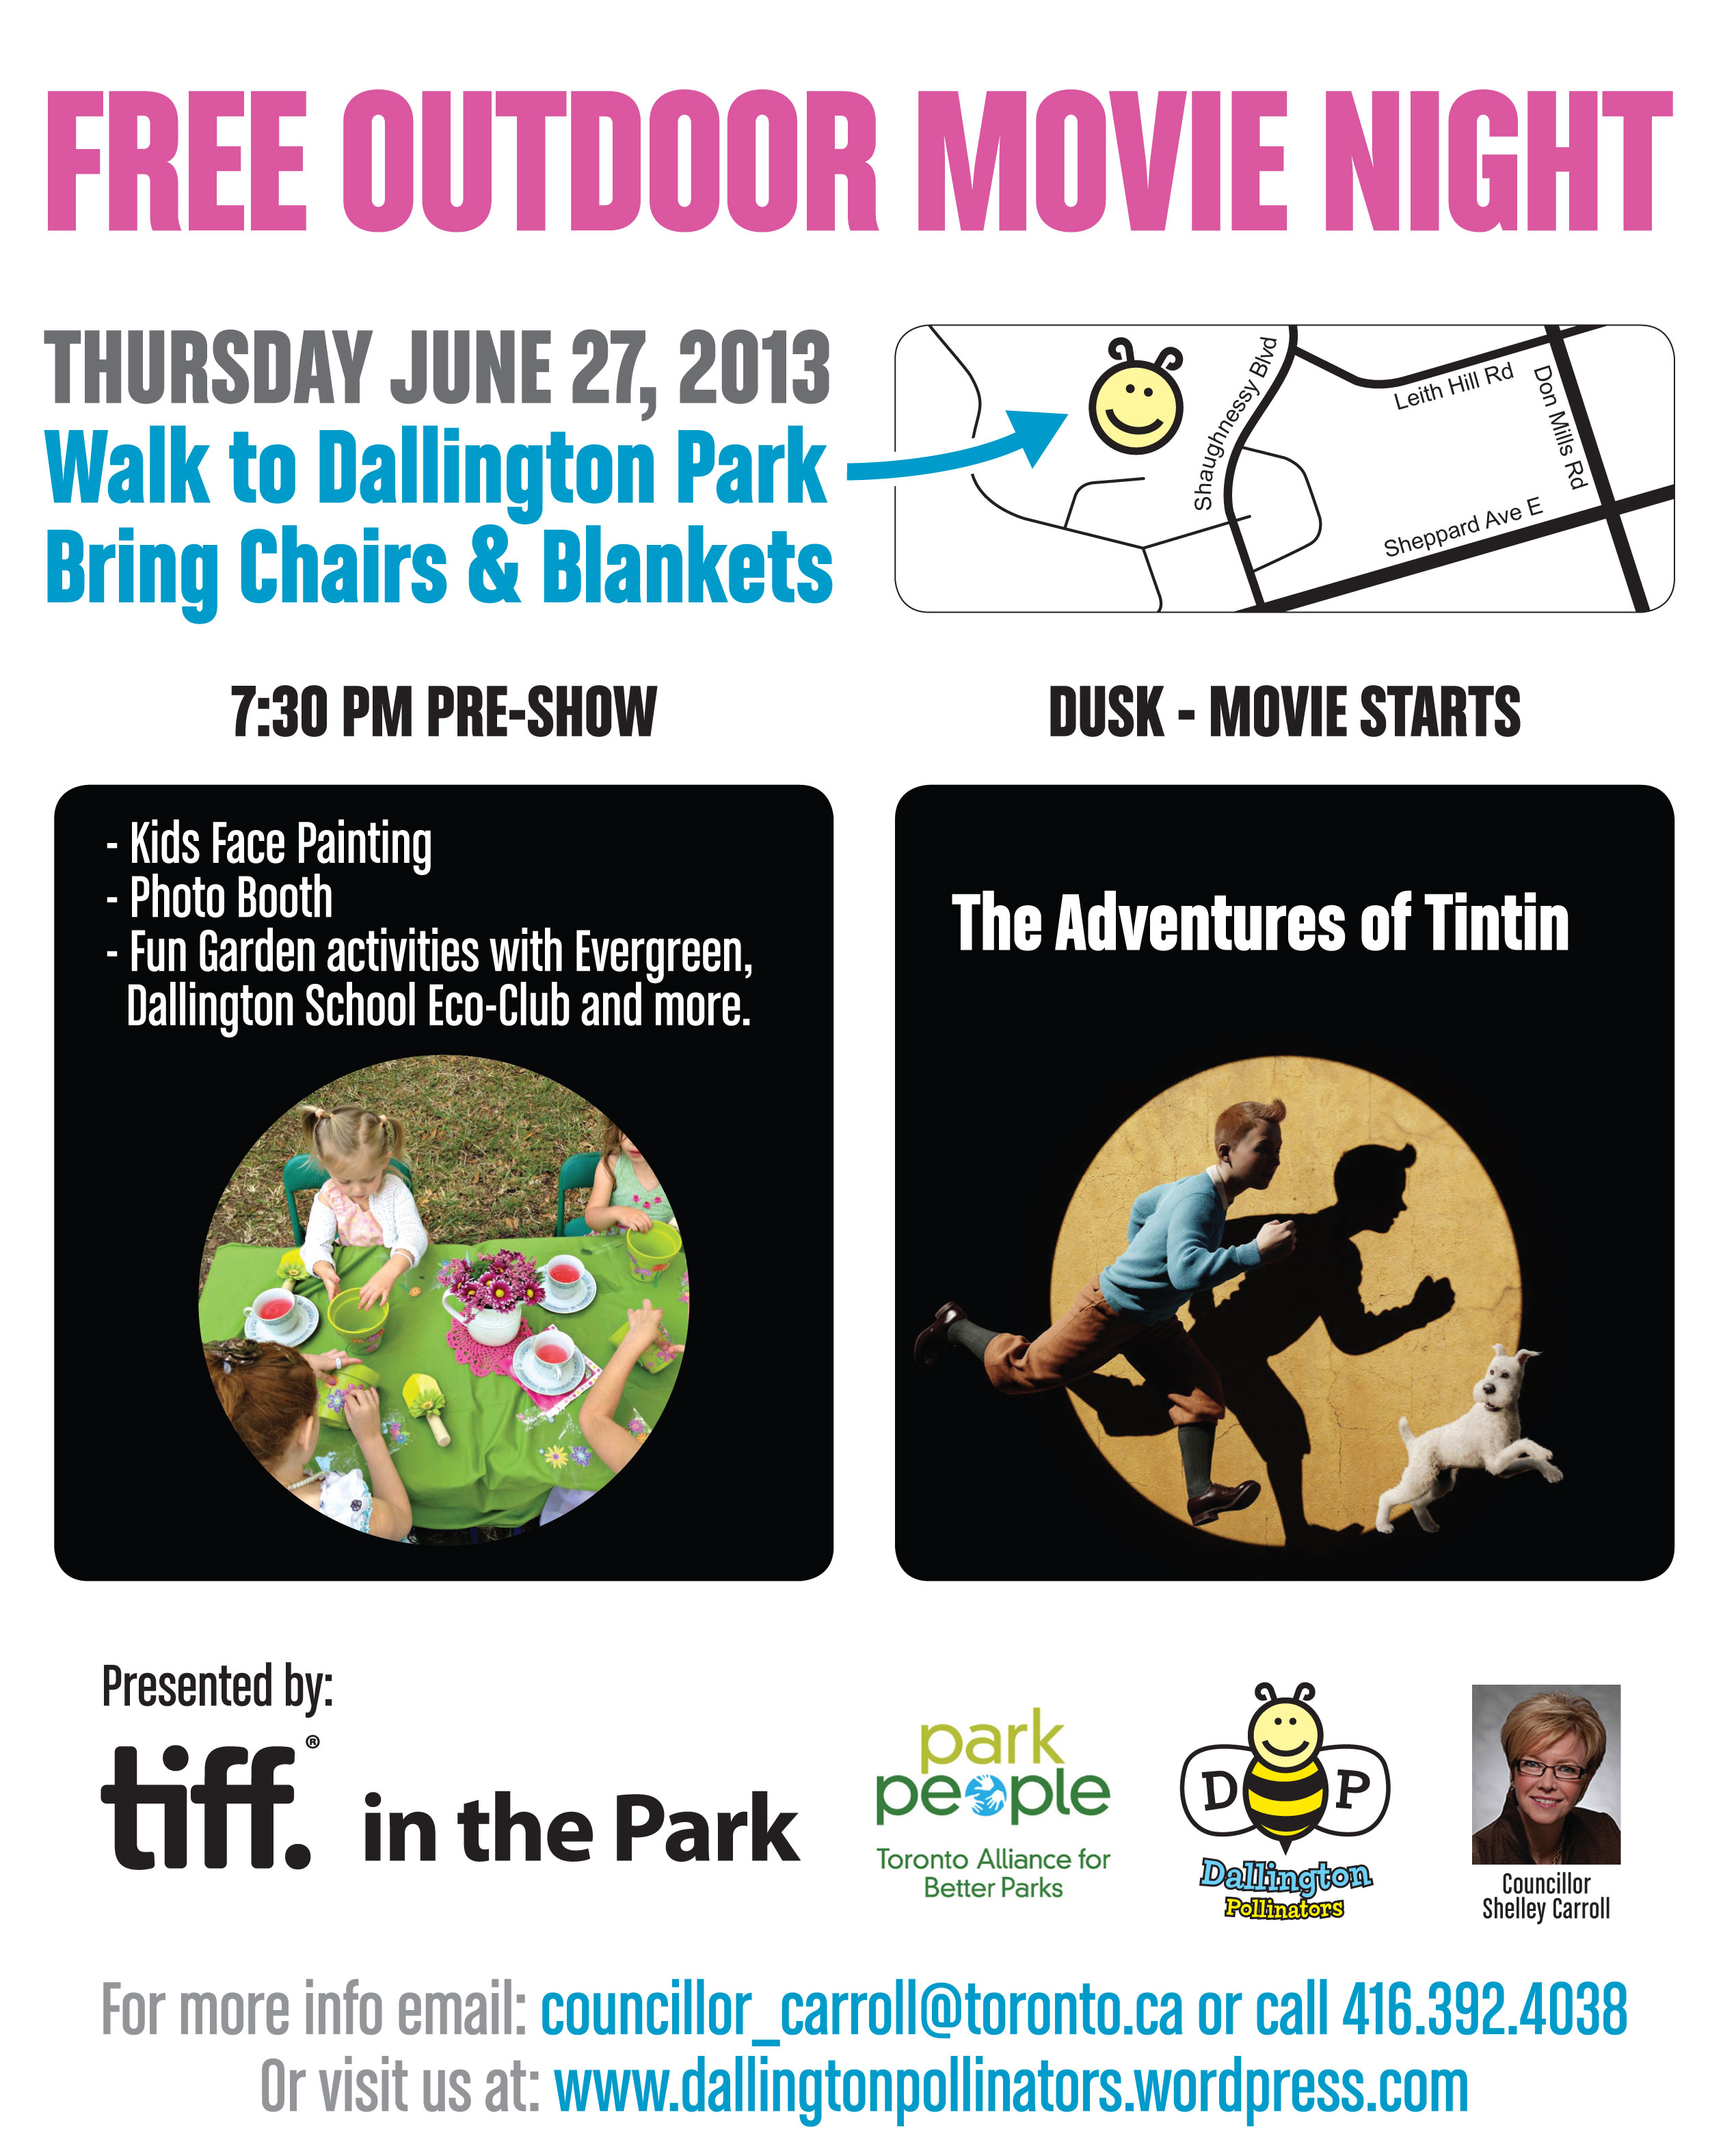 Join Us On Thursday June 27 For A Special Movie Night At